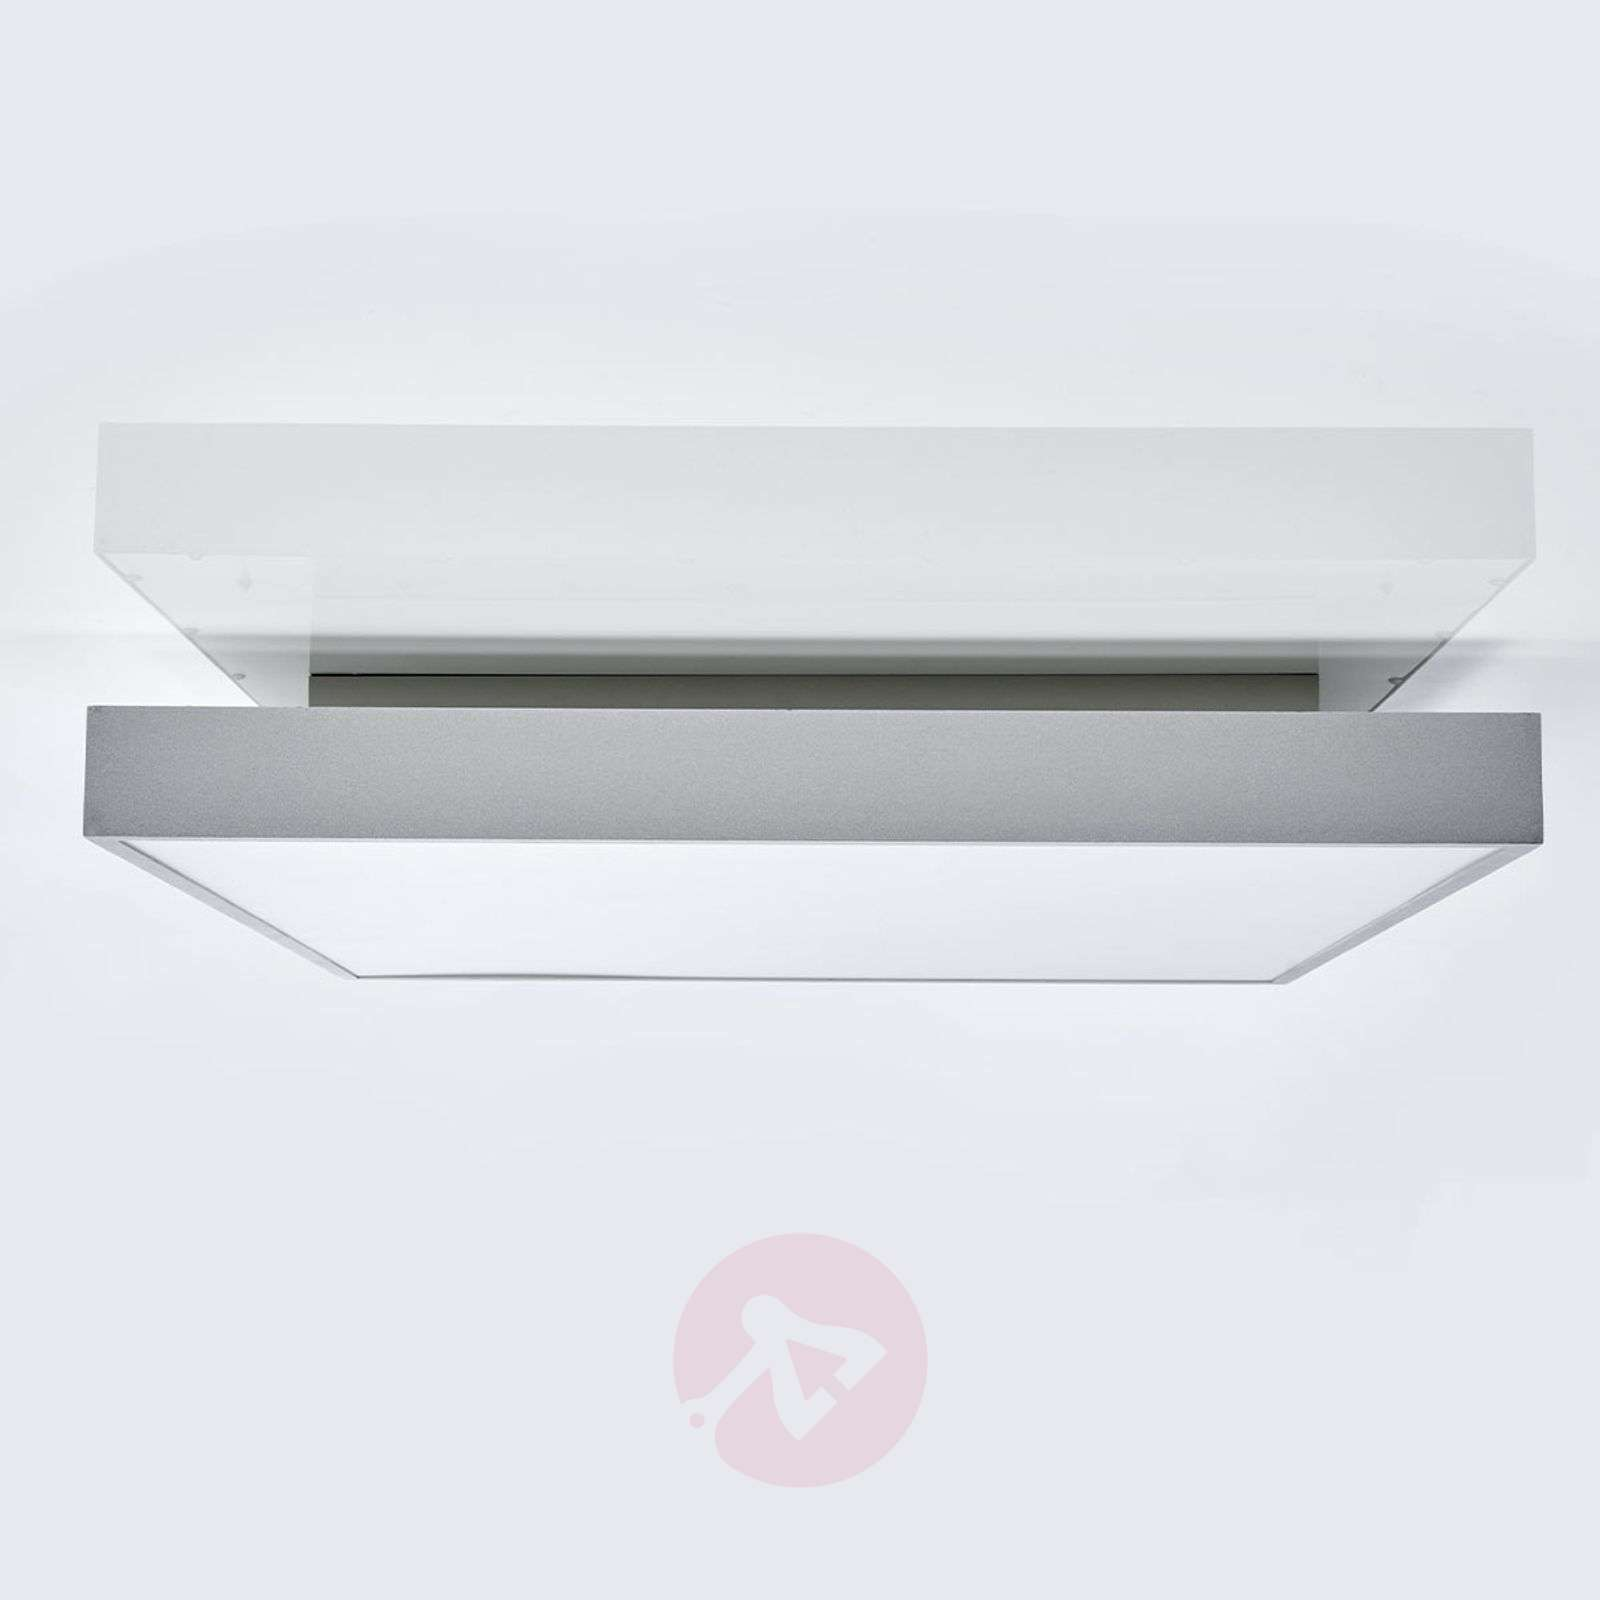 LED panel Vince with remote control, 60 x 60 cm-9956029-02